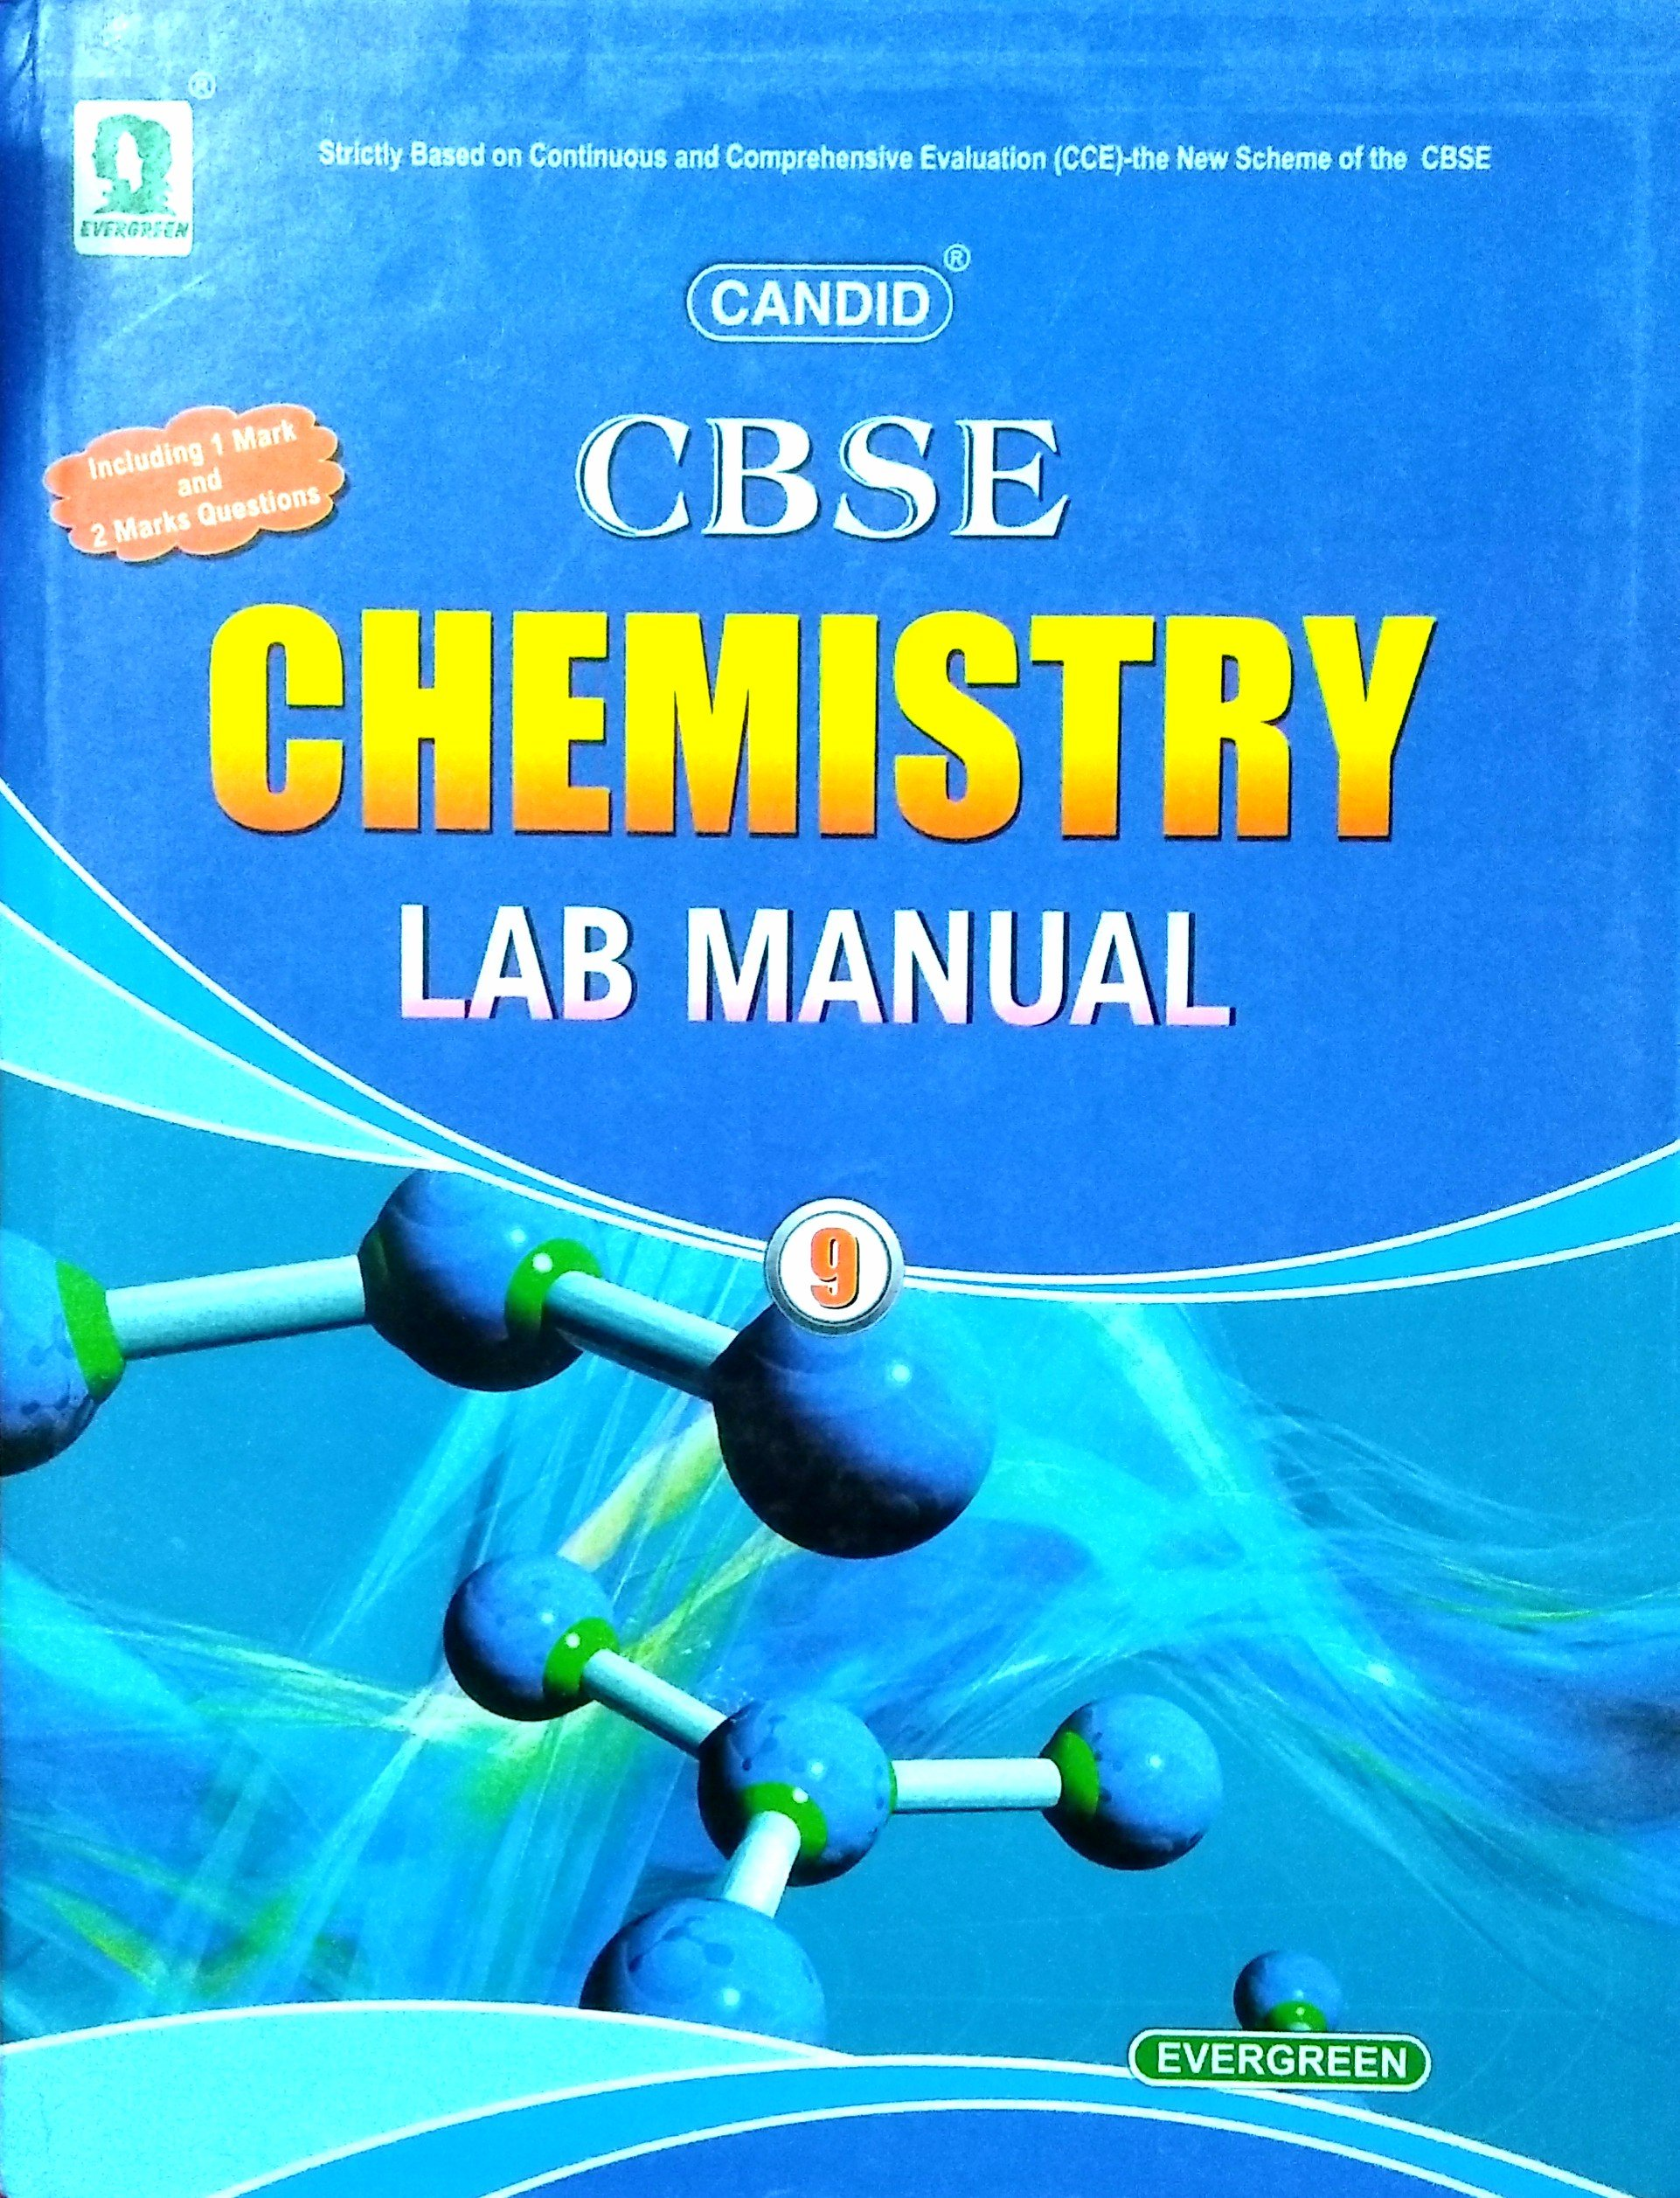 EVERGREEN CANDID CHEMISTRY LAB MANUAL FOR CLASS 9 CBSE STUDENTS: Amazon.in:  PRADEEP SINGH: Books